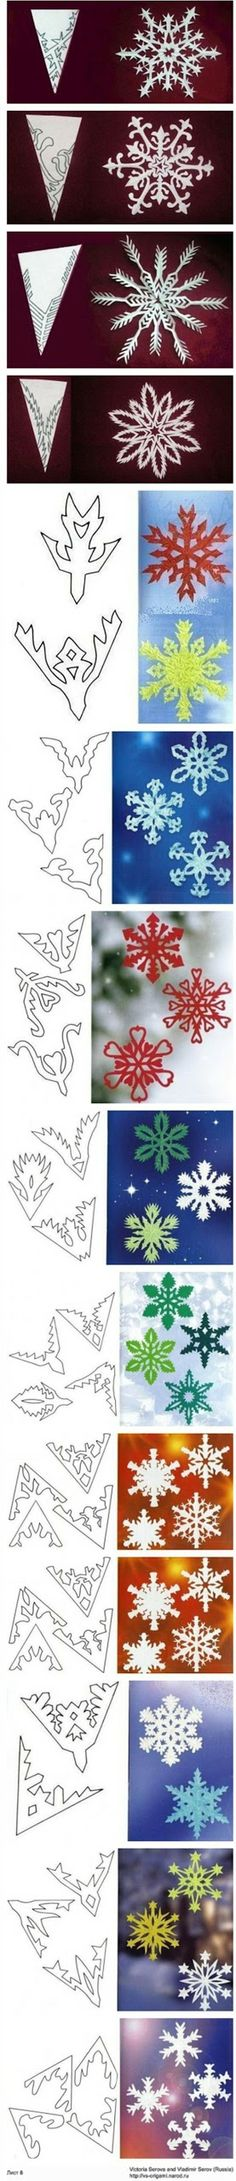 Diy Projects: DIY Paper Cut Snowflakes Tutorial Collections